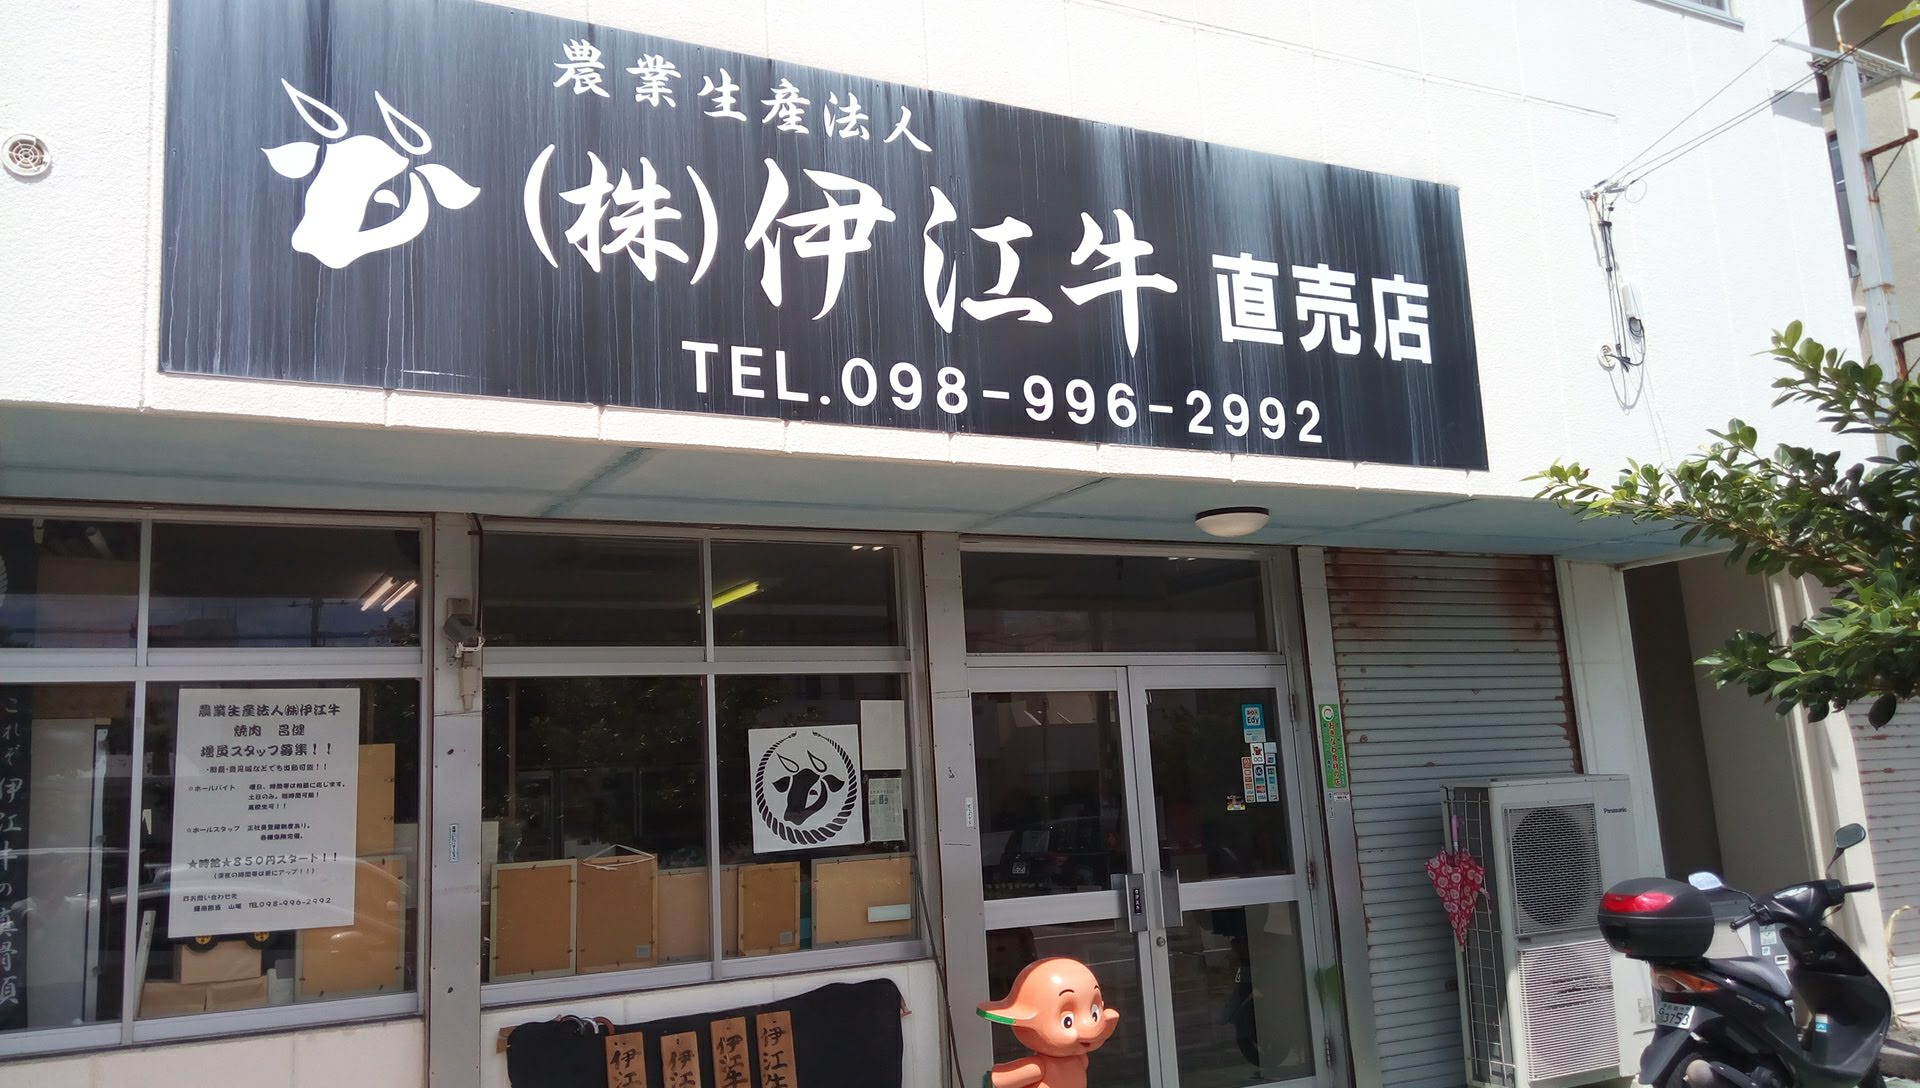 Ie beef direct selling shop you can easily eat the illusion of Ie beef! Beef soup and steak don bow are good!